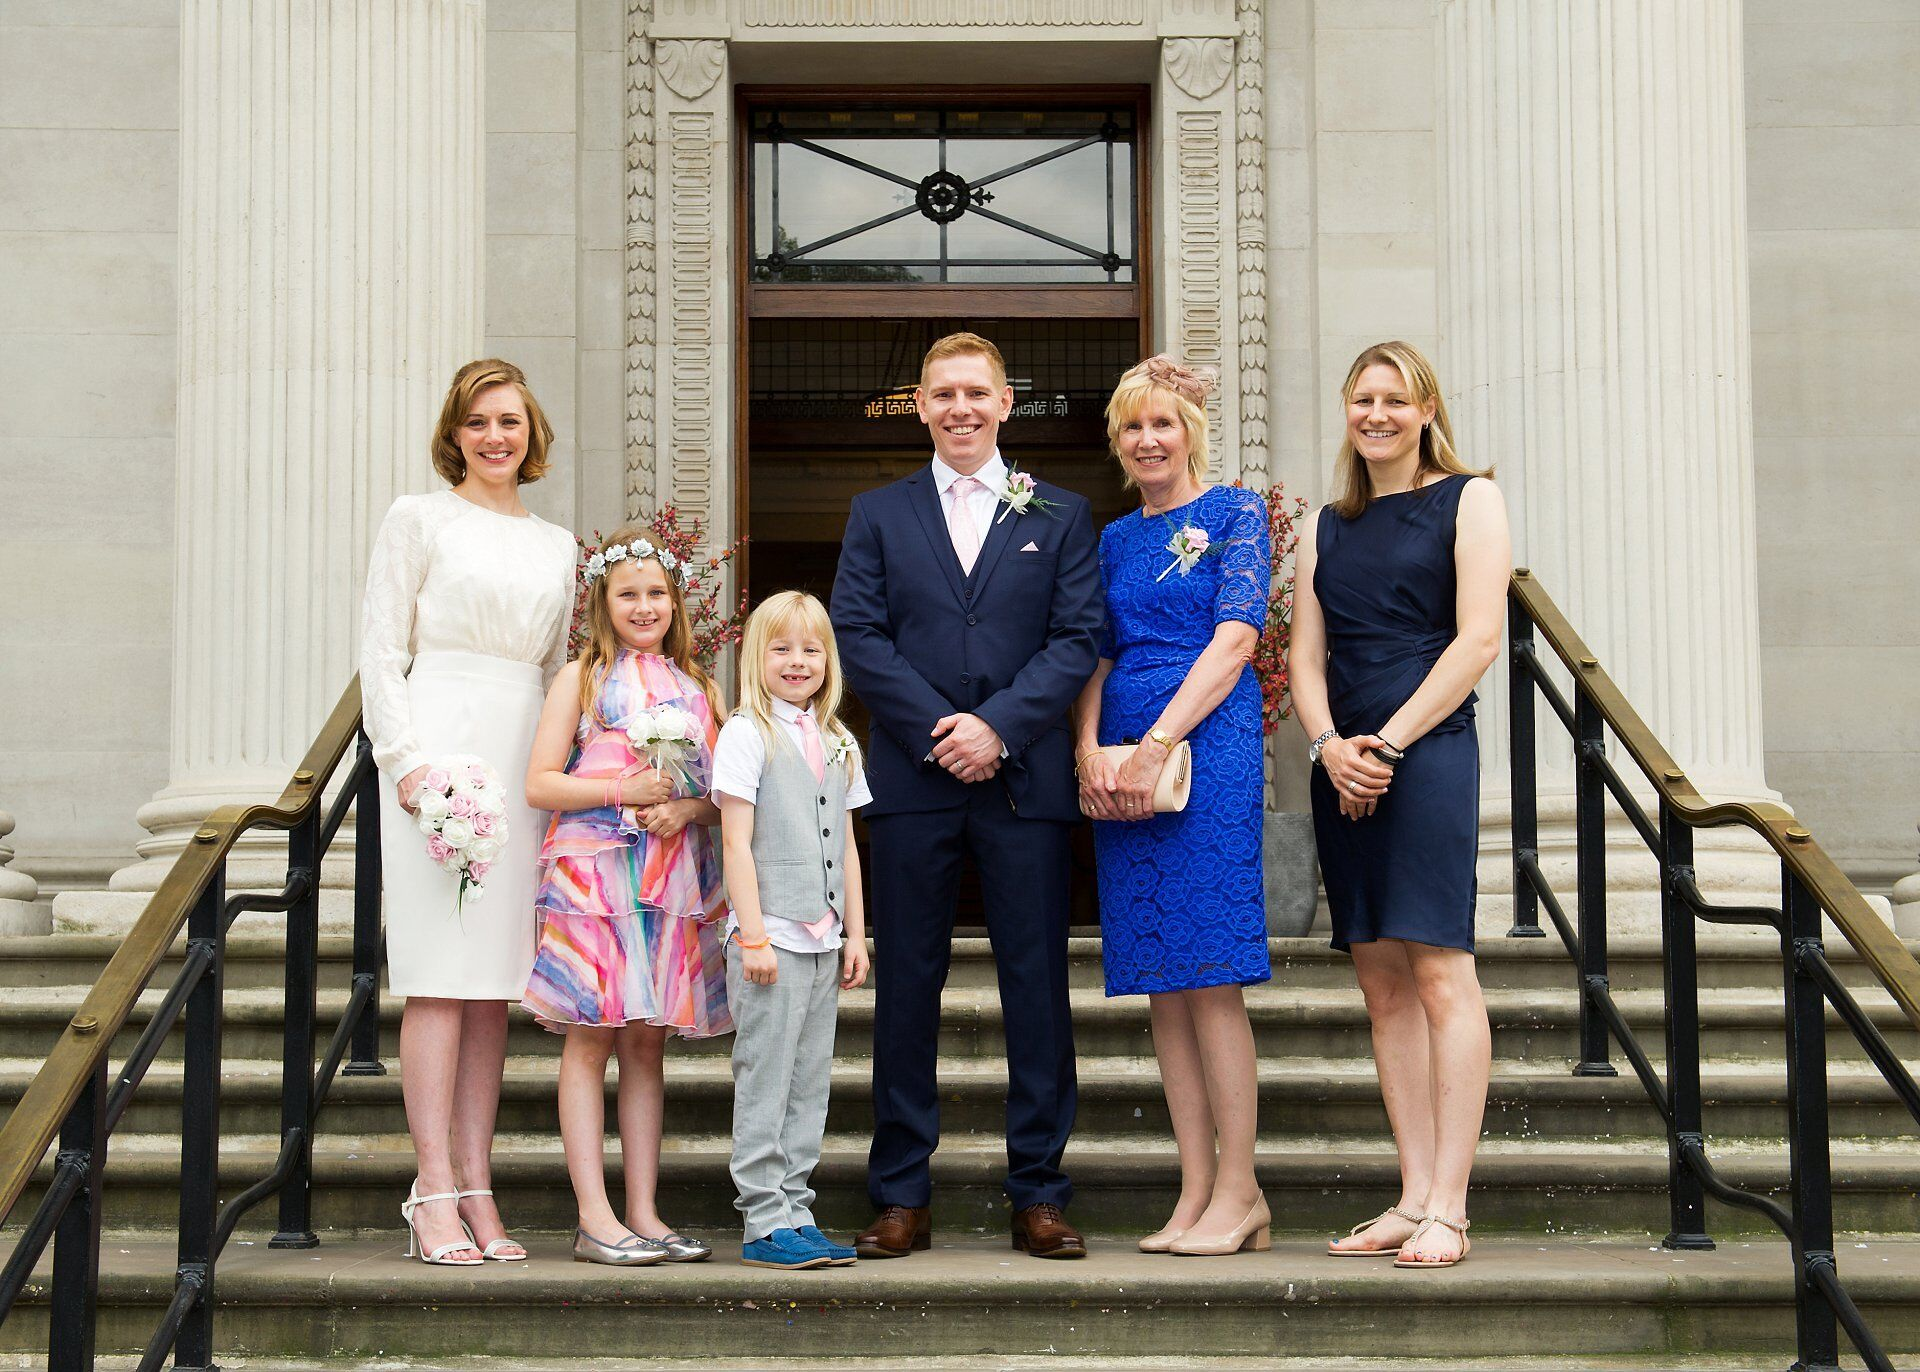 sping wedding in a london register office couple pose with family on steps